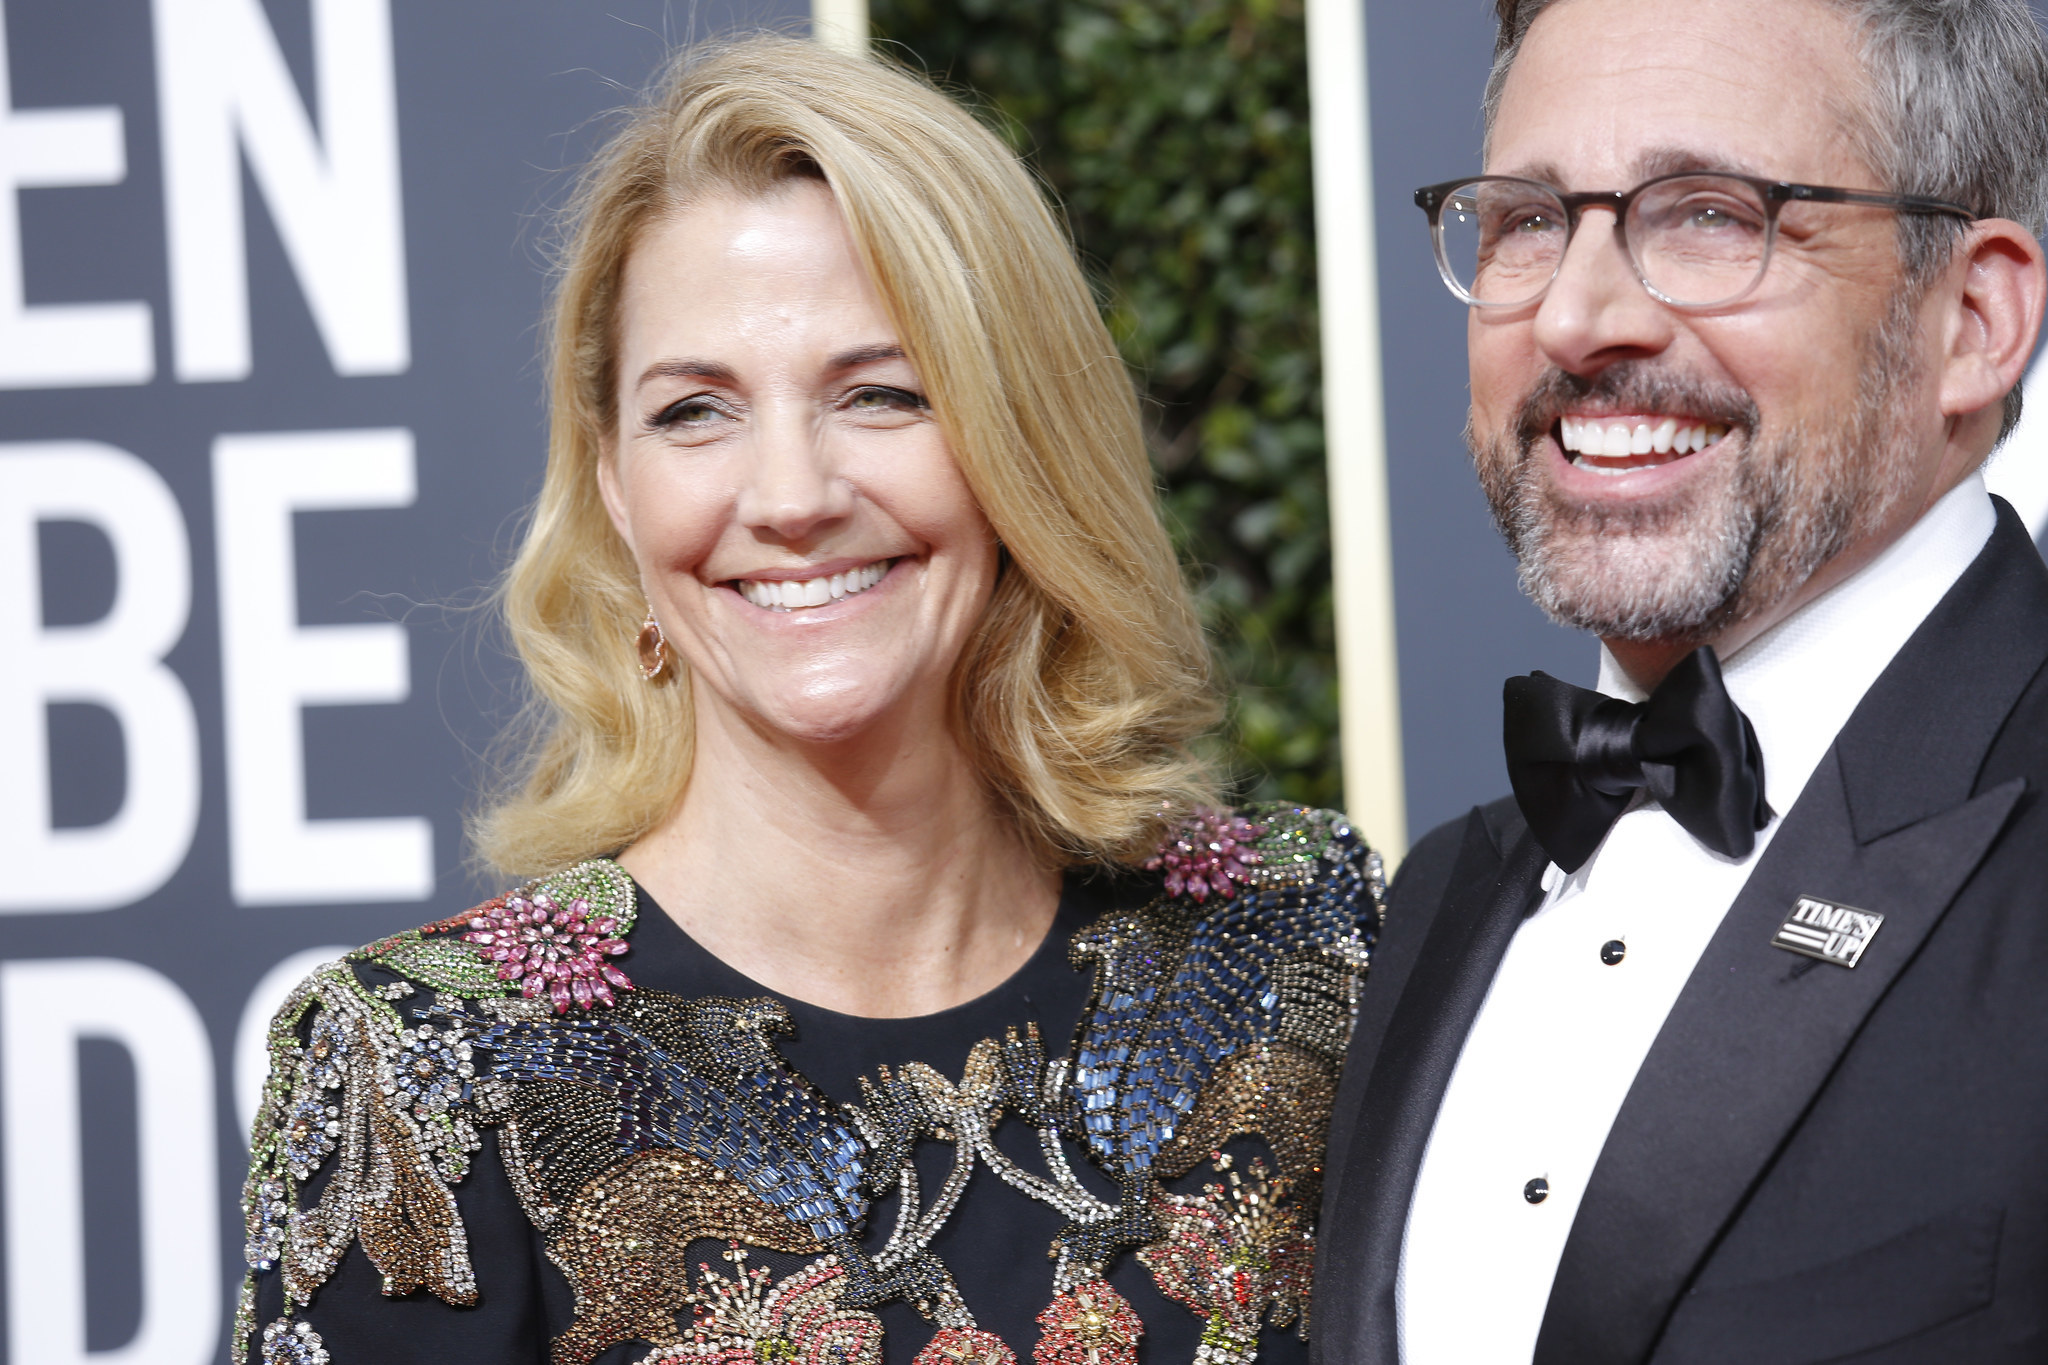 BEVERLY HILLS, CA - January 7, 2018 Steve Carrell and wife arriving at the 75th Golden Globes at th